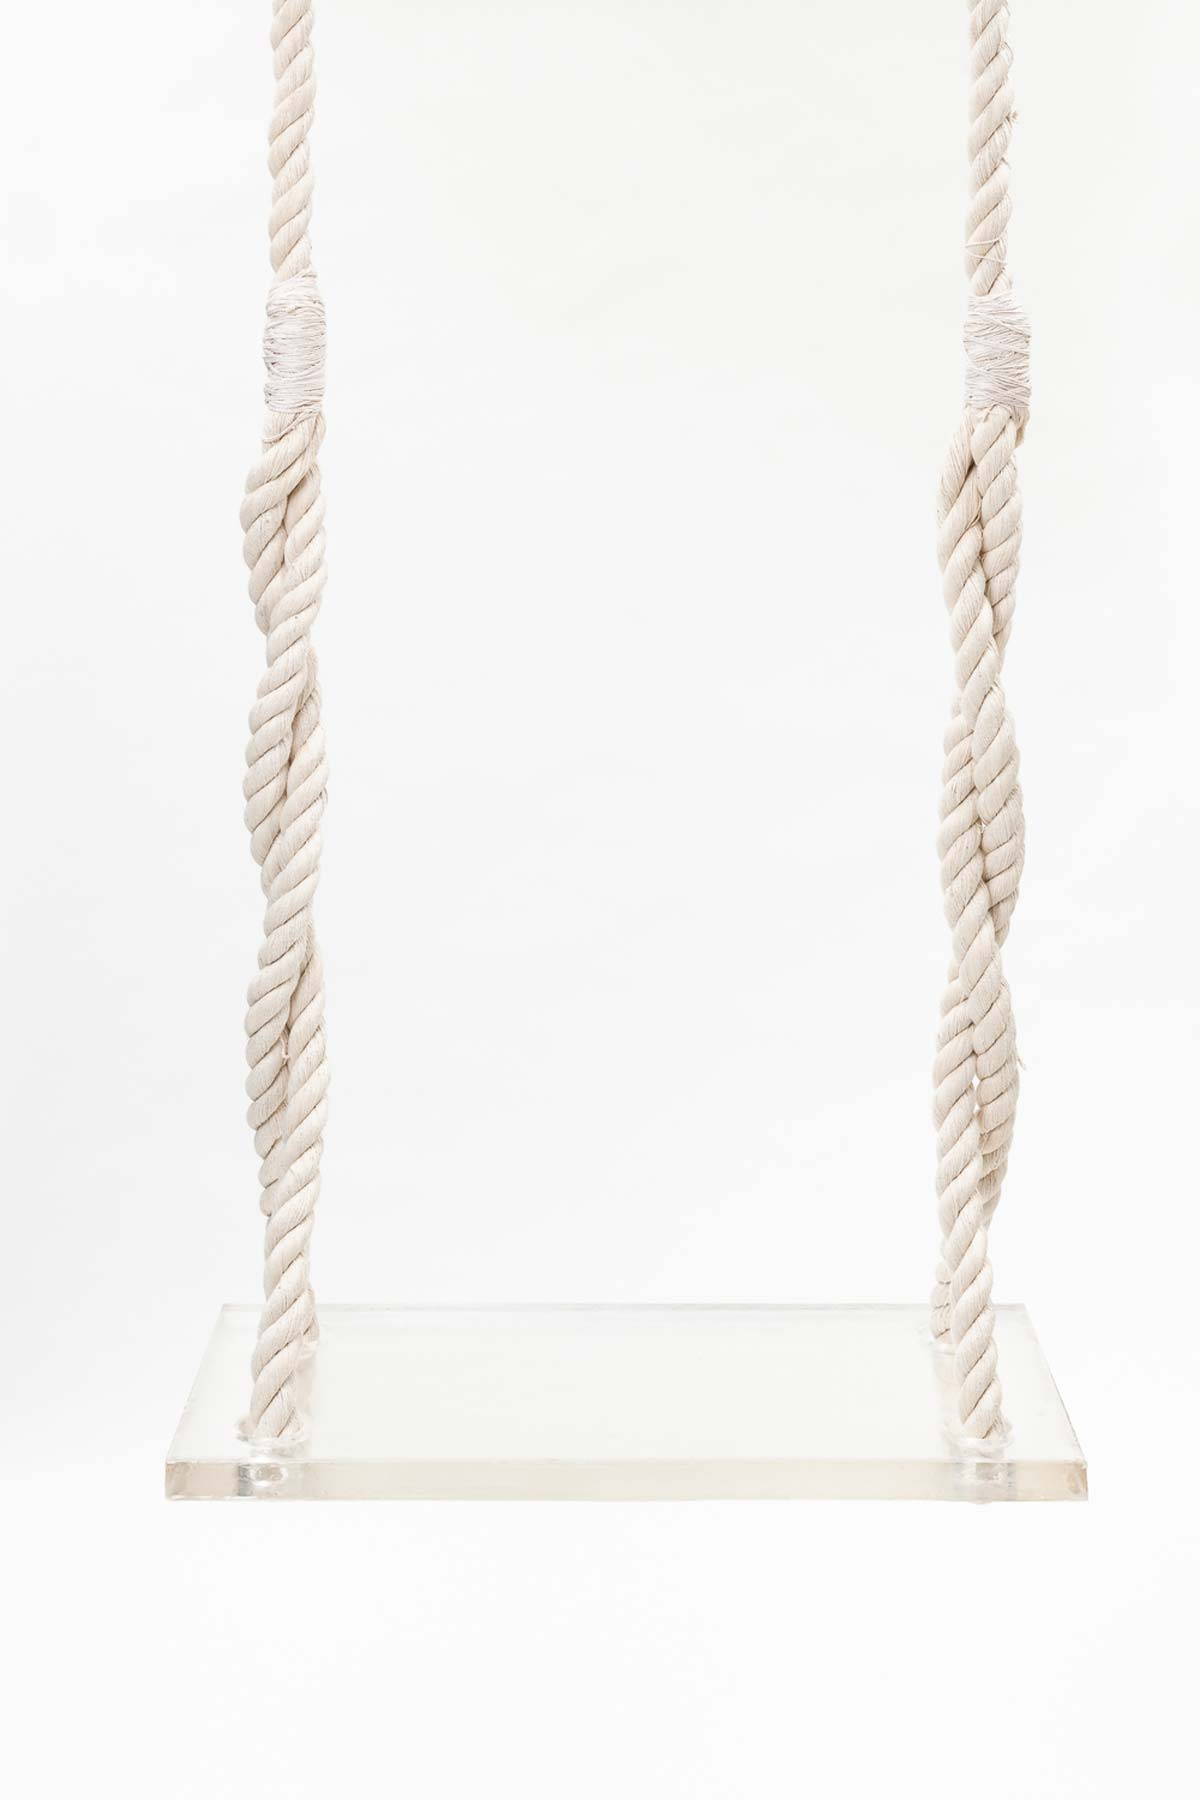 Siren Swing, 144 x 24 x 12 inches (height varies), sweat, tears, acrylic, rope, hardware, 2017